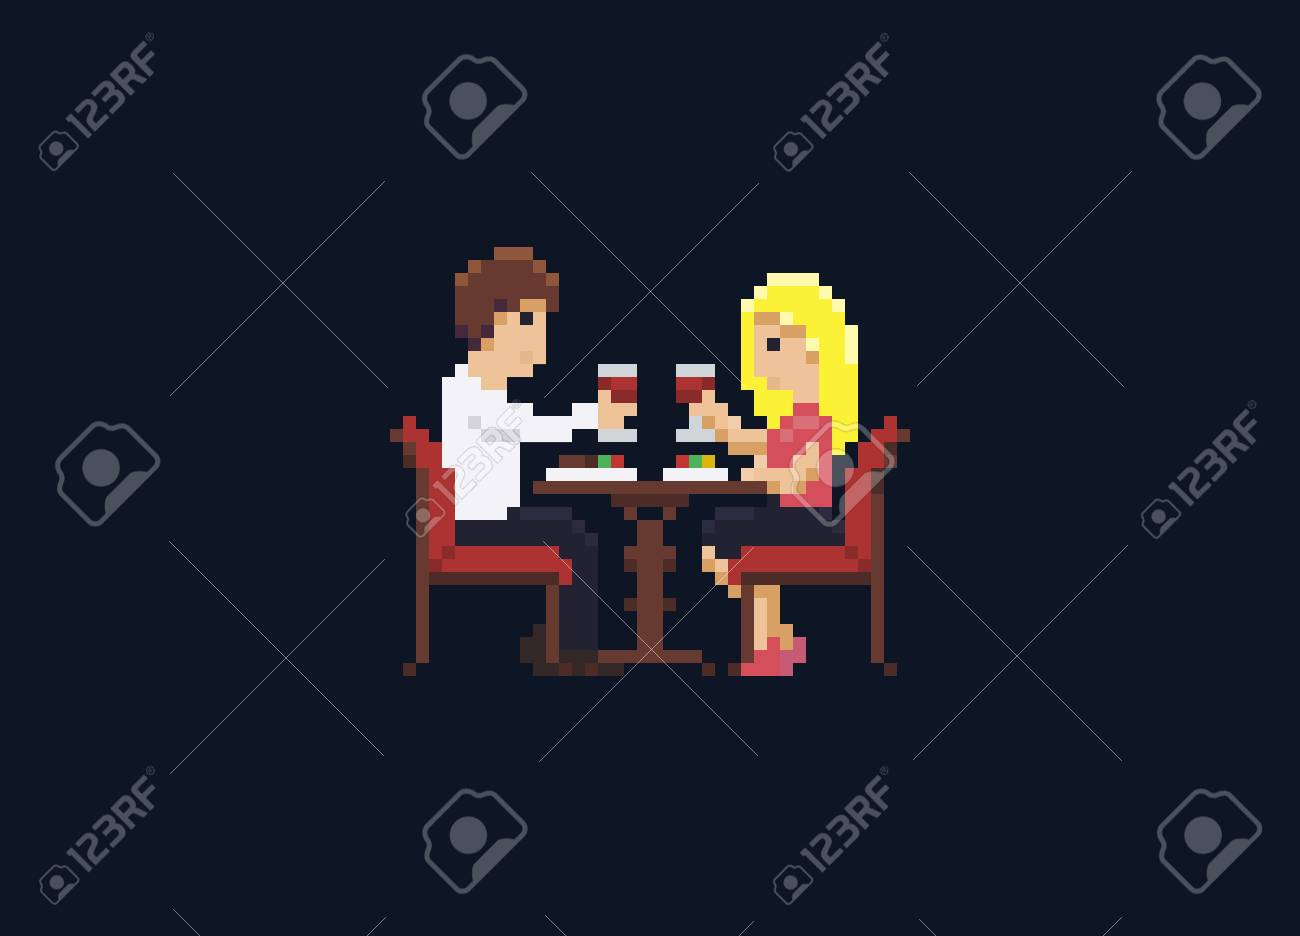 Pixel Art Couple At Romantic Dinner In Restaurant Royalty Free Cliparts Vectors And Stock Illustration Image 70843597